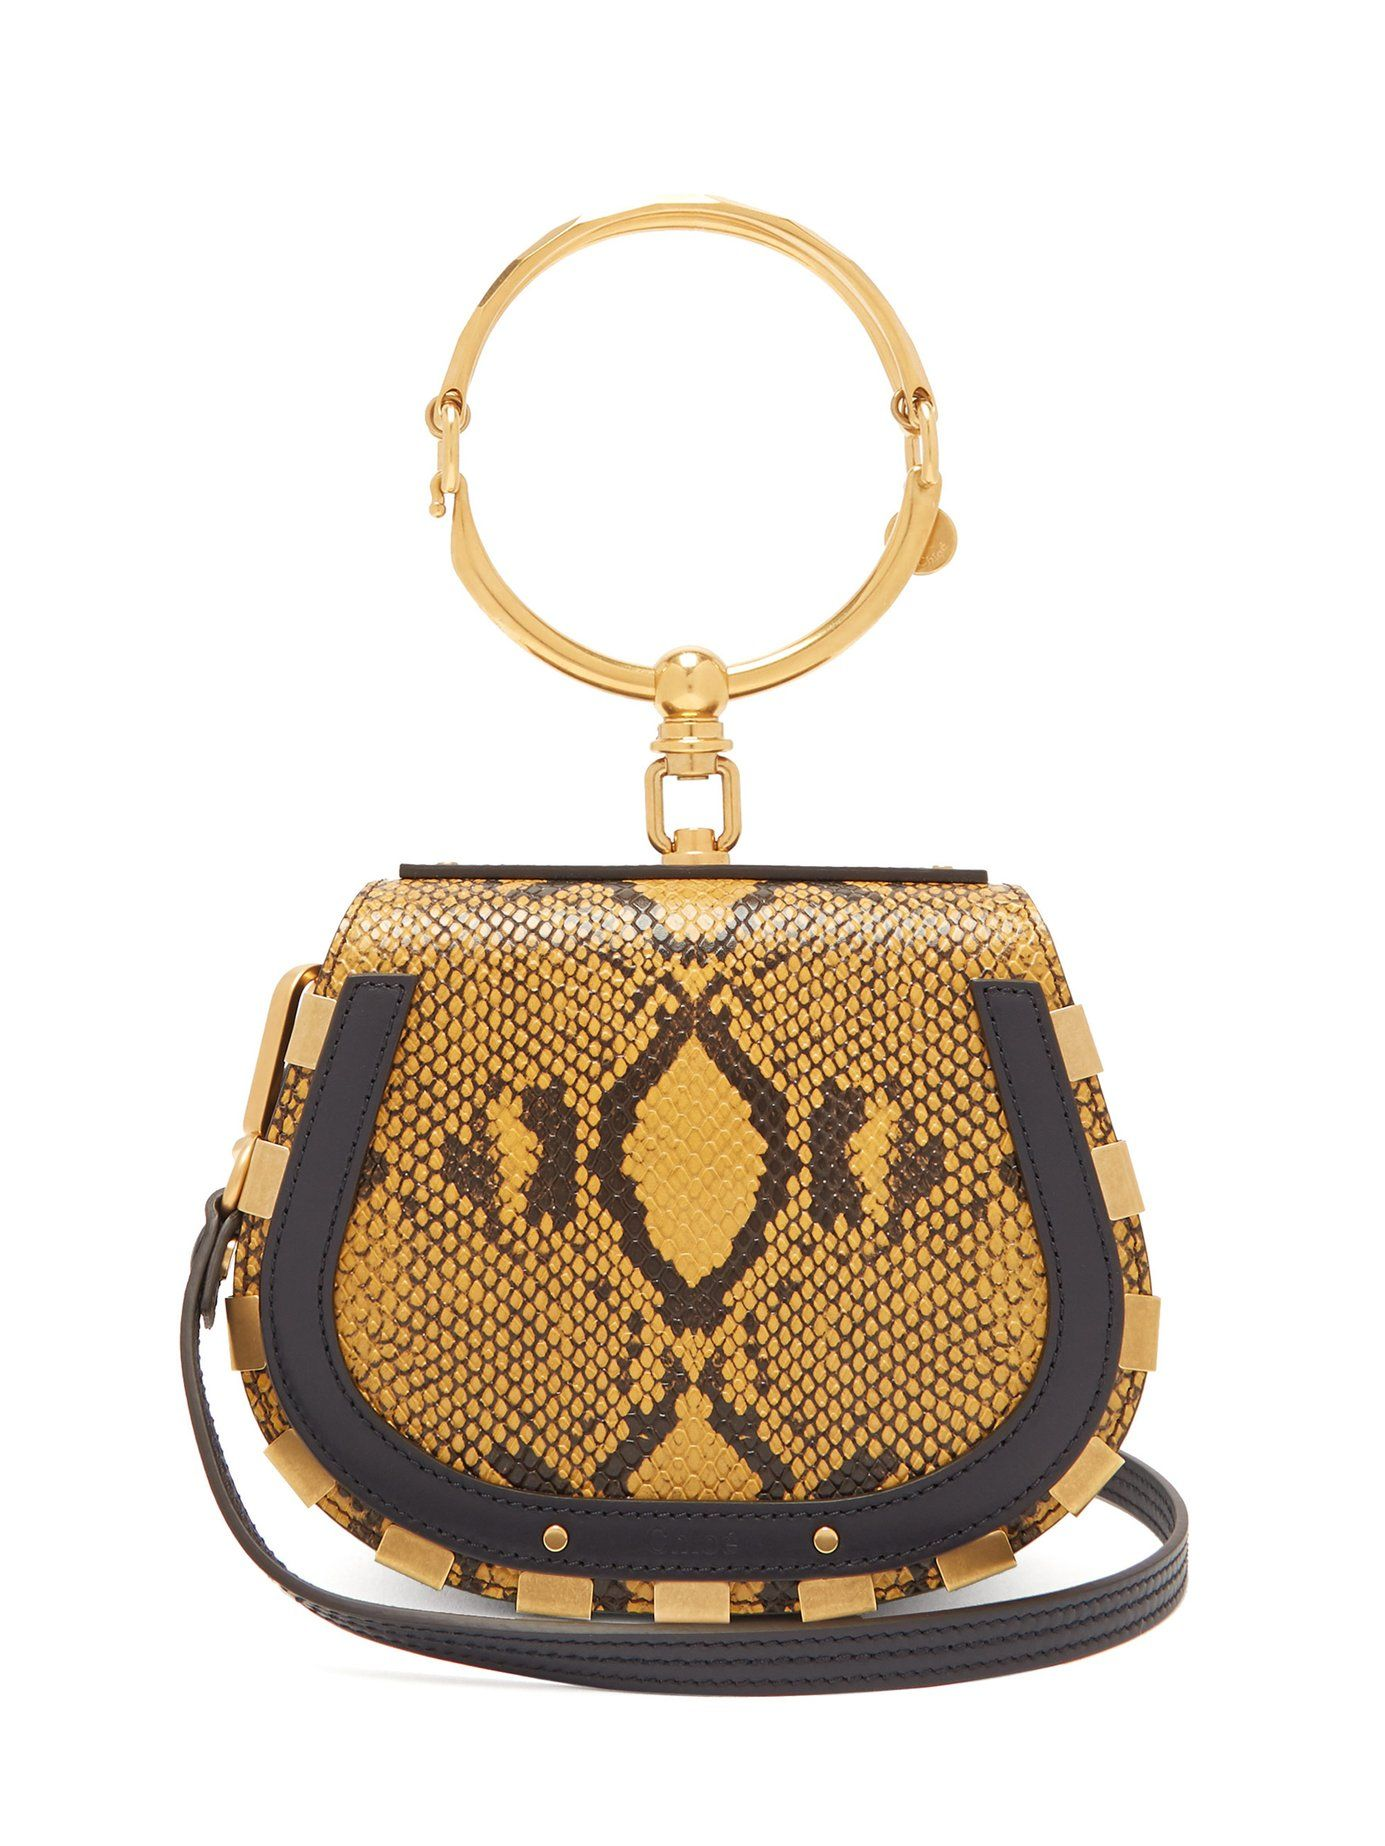 Nile small leather and suede crossbody bag Chloé